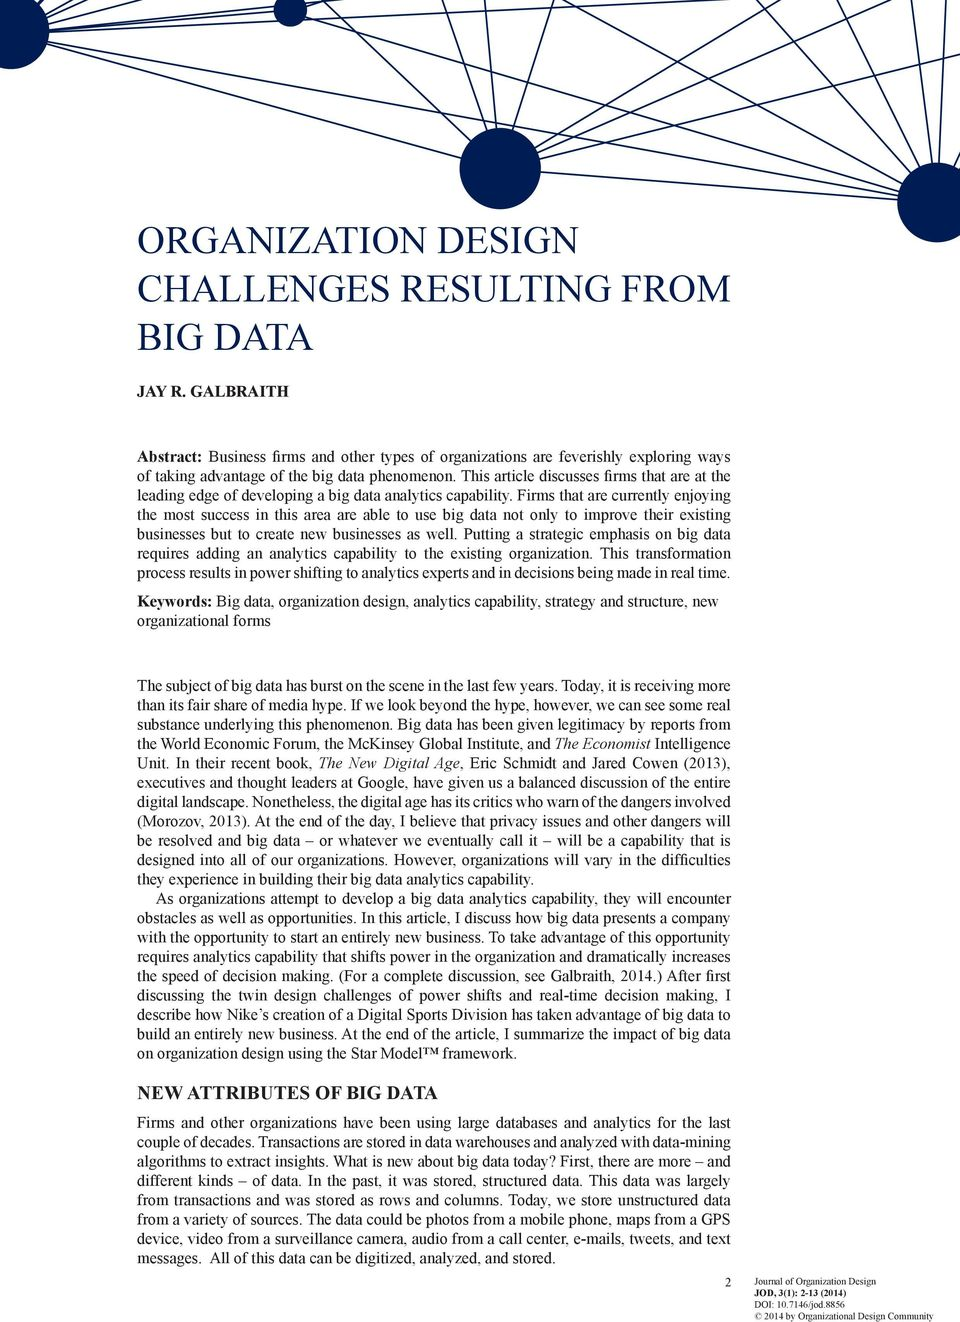 This article discusses firms that are at the leading edge of developing a big data analytics capability.